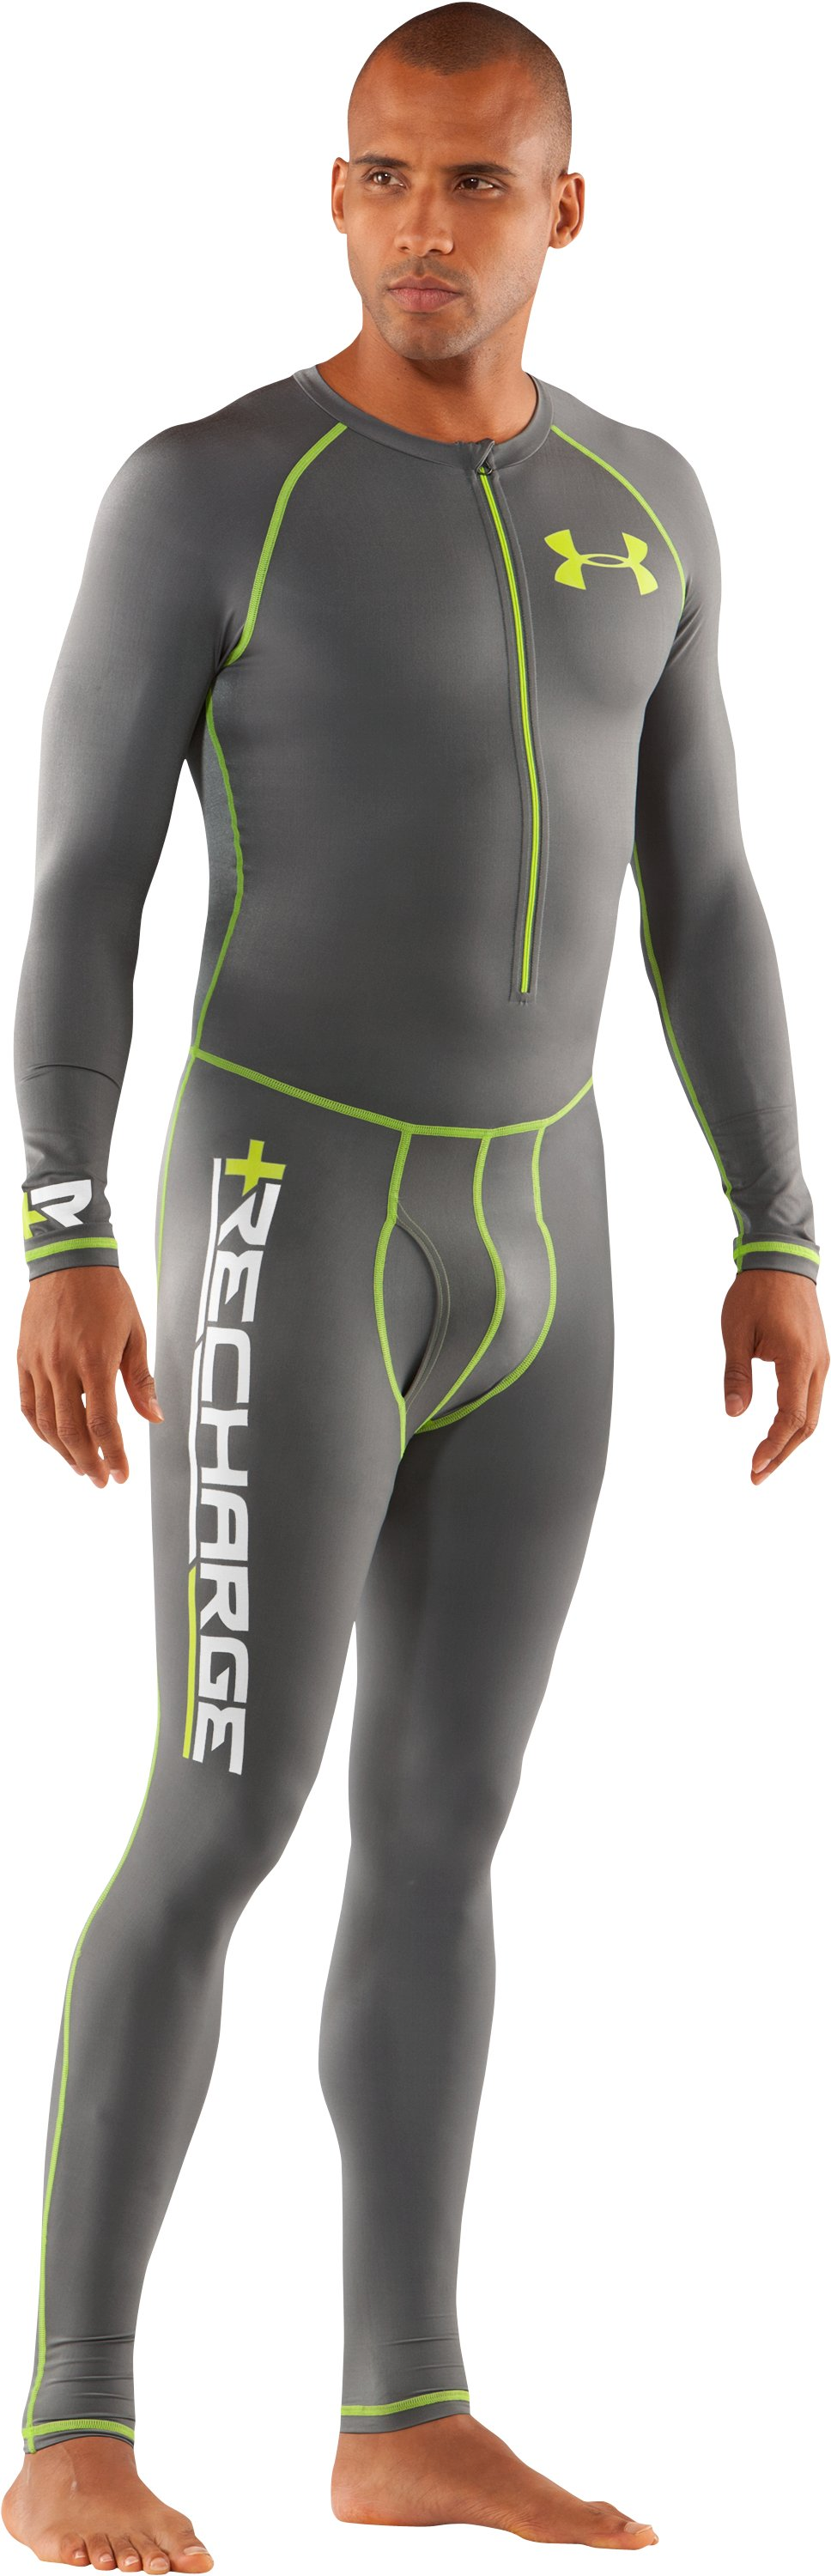 Men's Recharge® Energy Suit, Metal